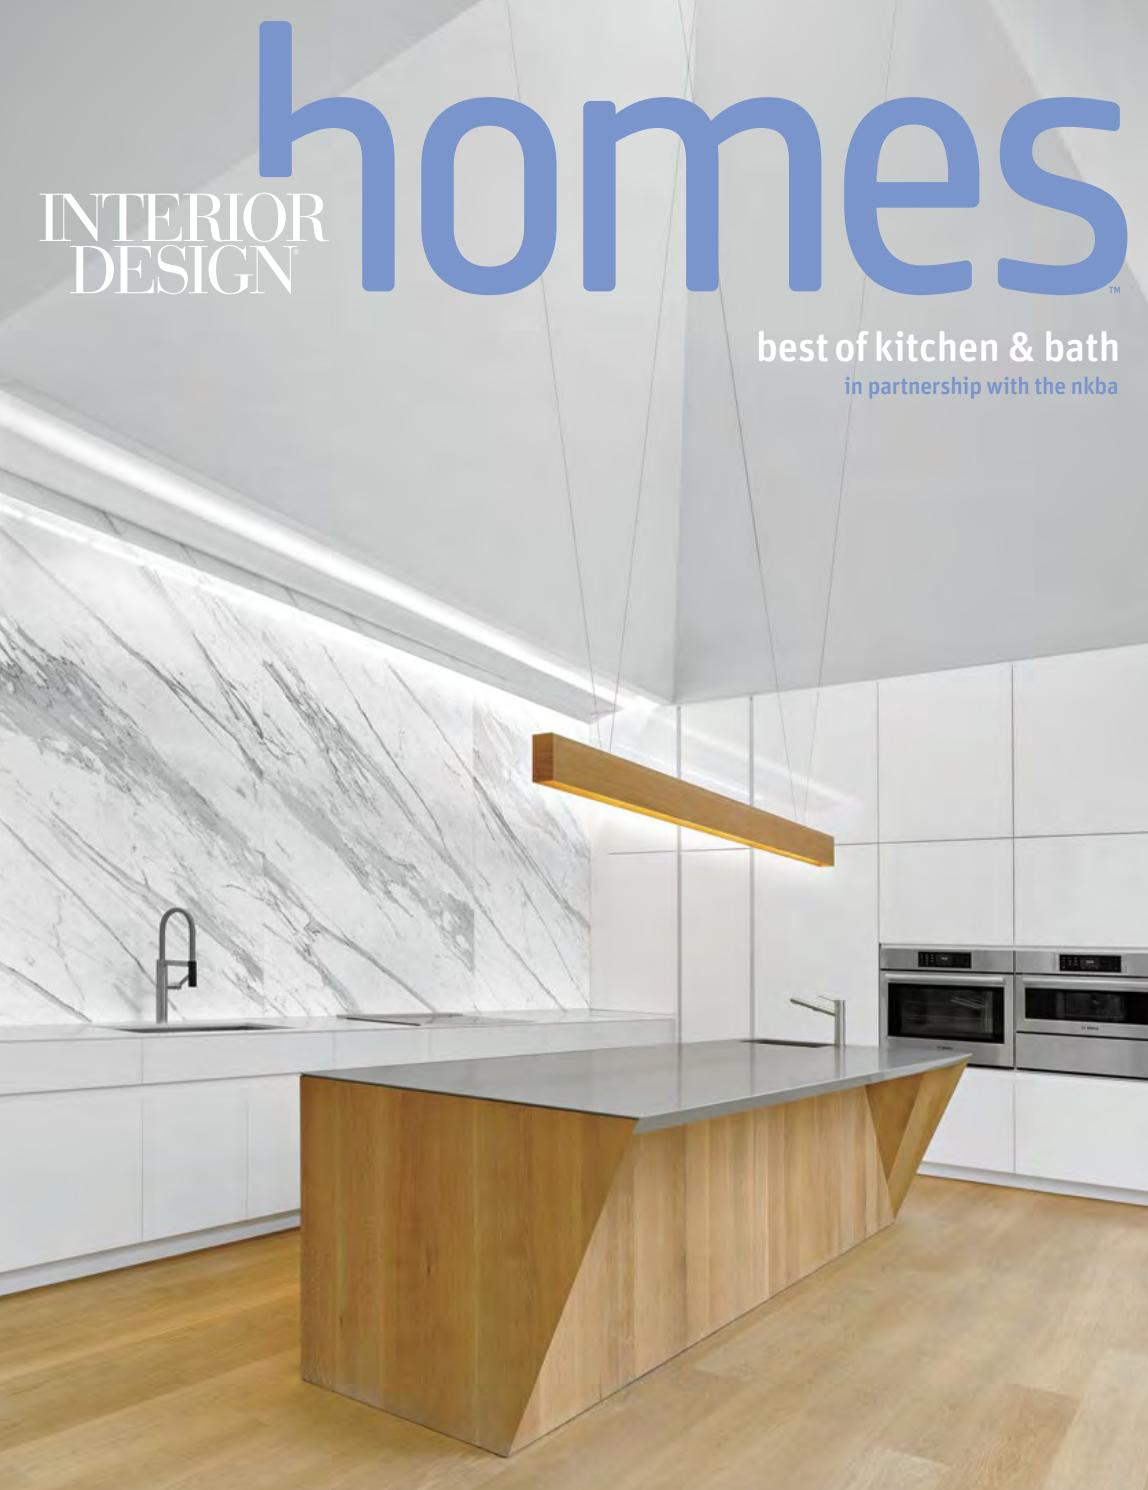 Interior Design Homes Best Of Kitchen Bath 2019 By Sandow Issuu